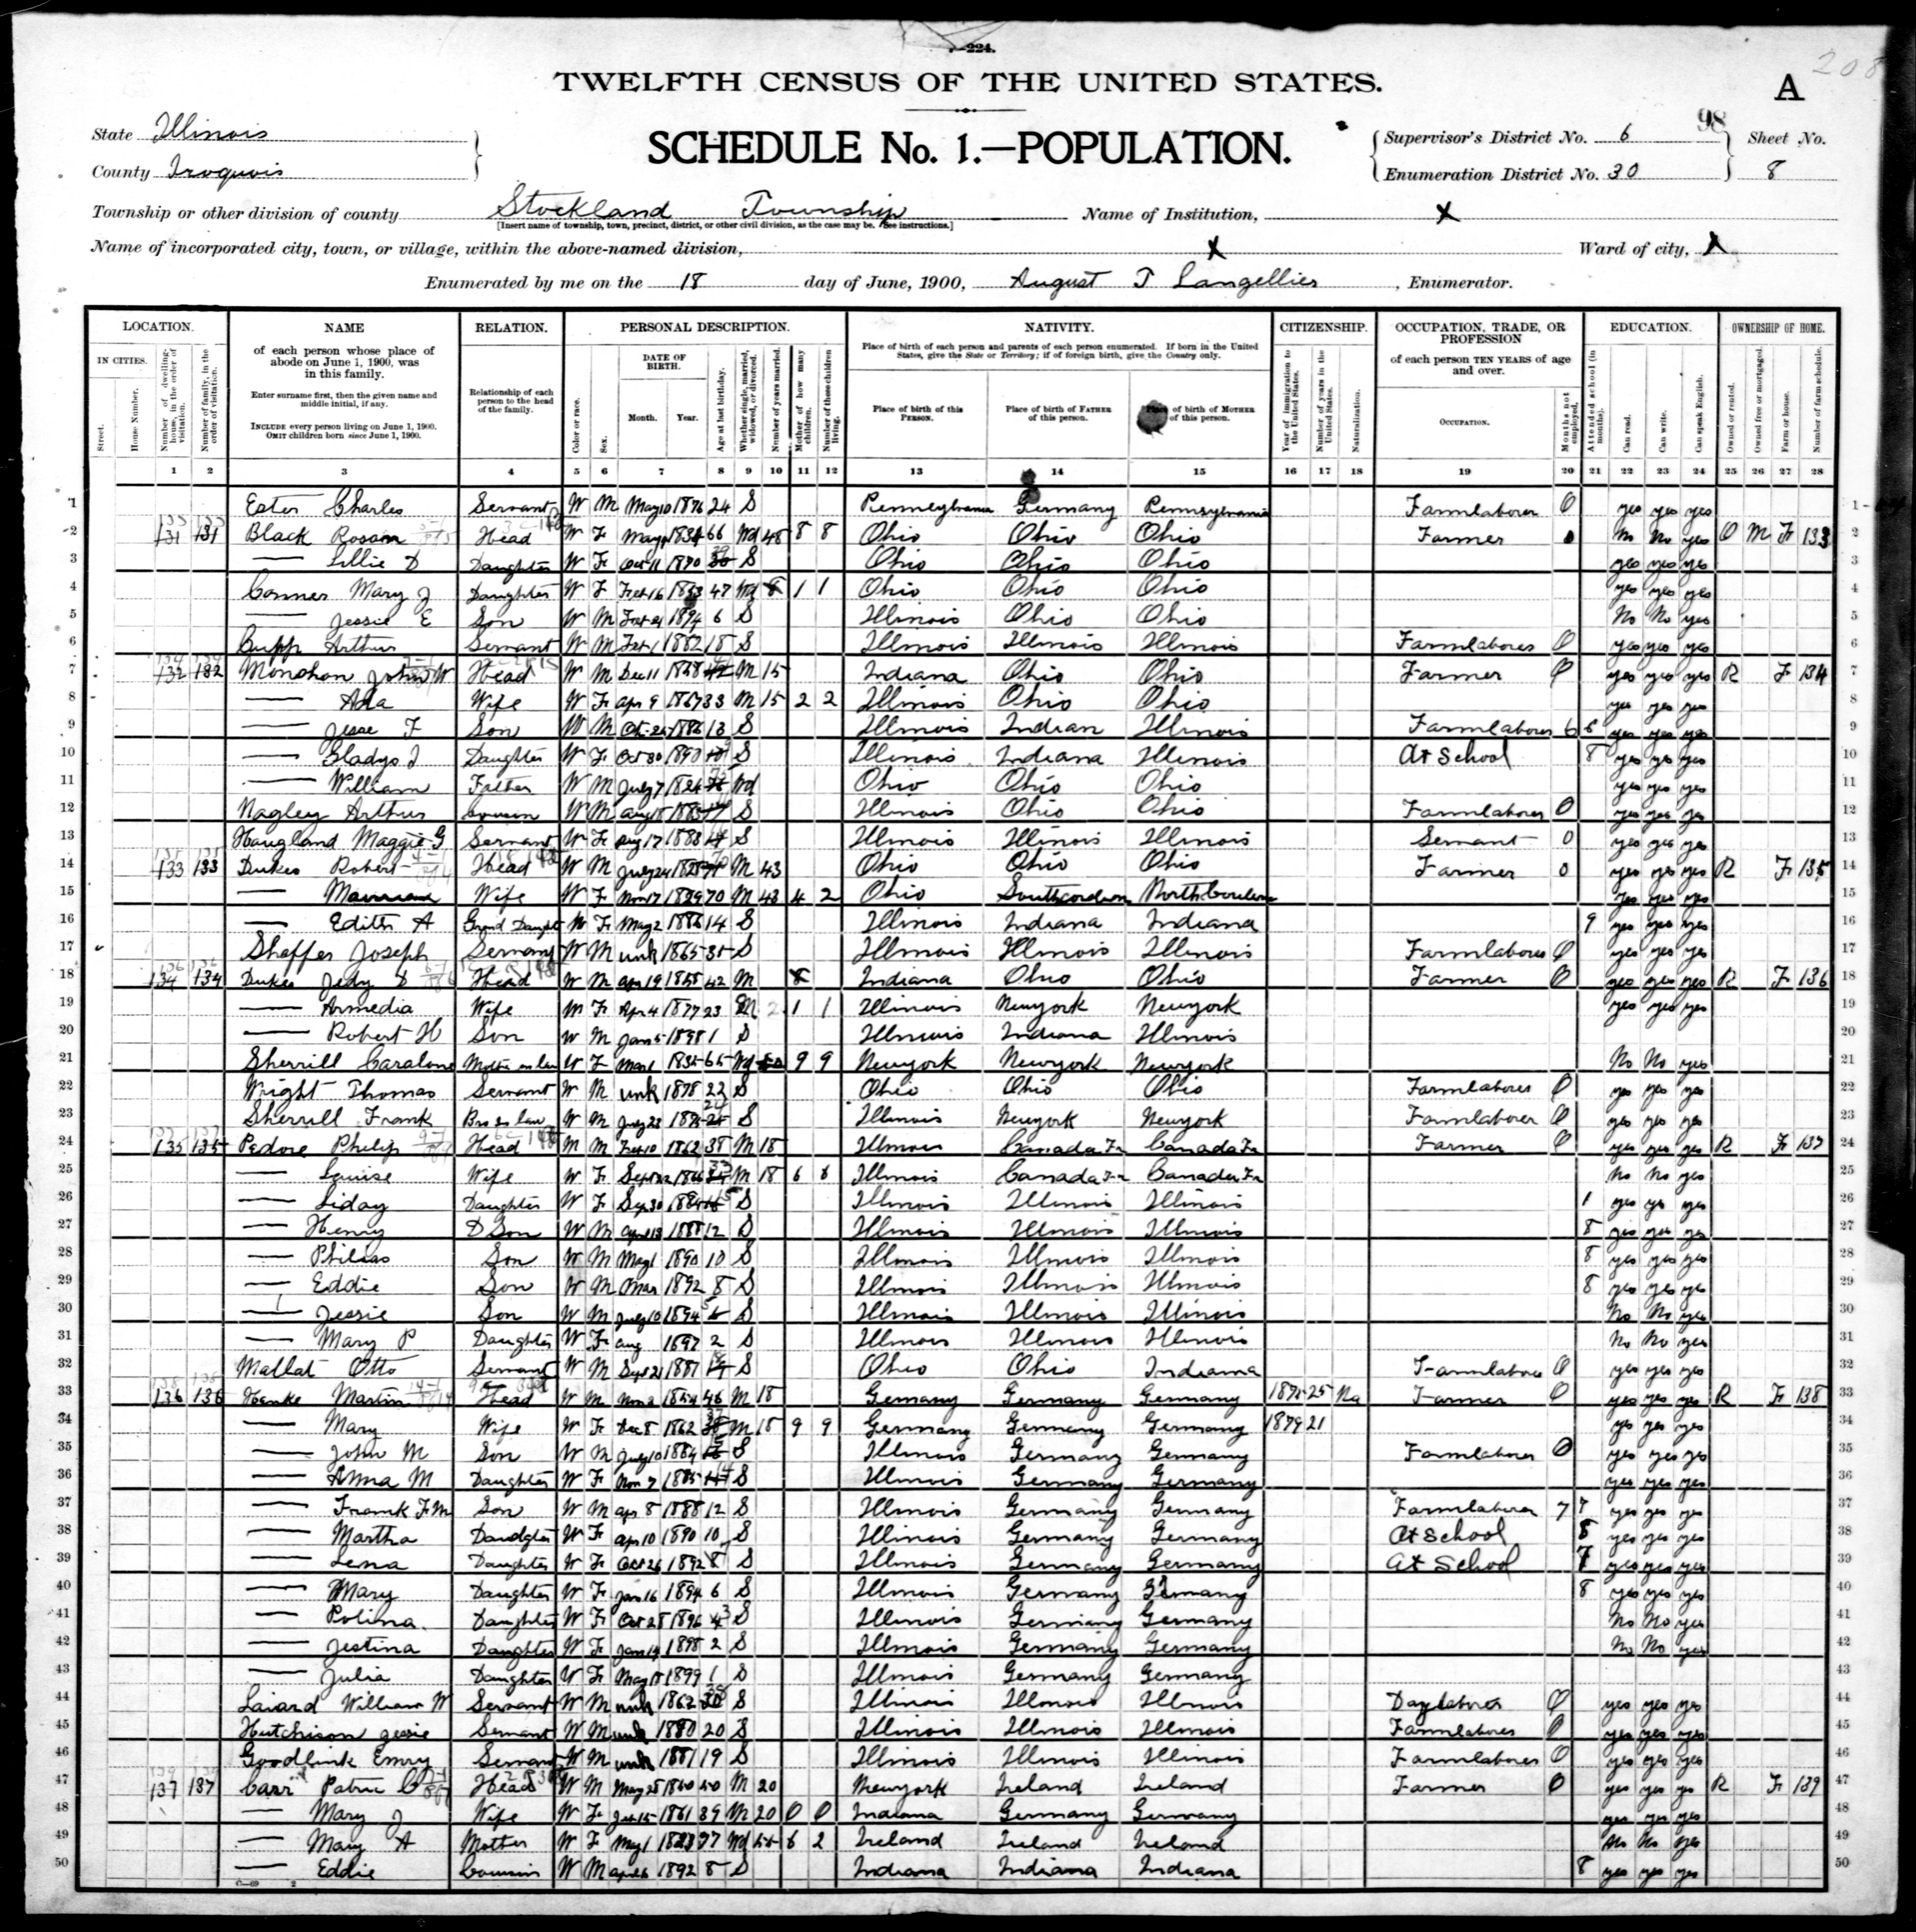 Illinois: IROQUOIS County, Enumeration District 30, Sheet No. 8A